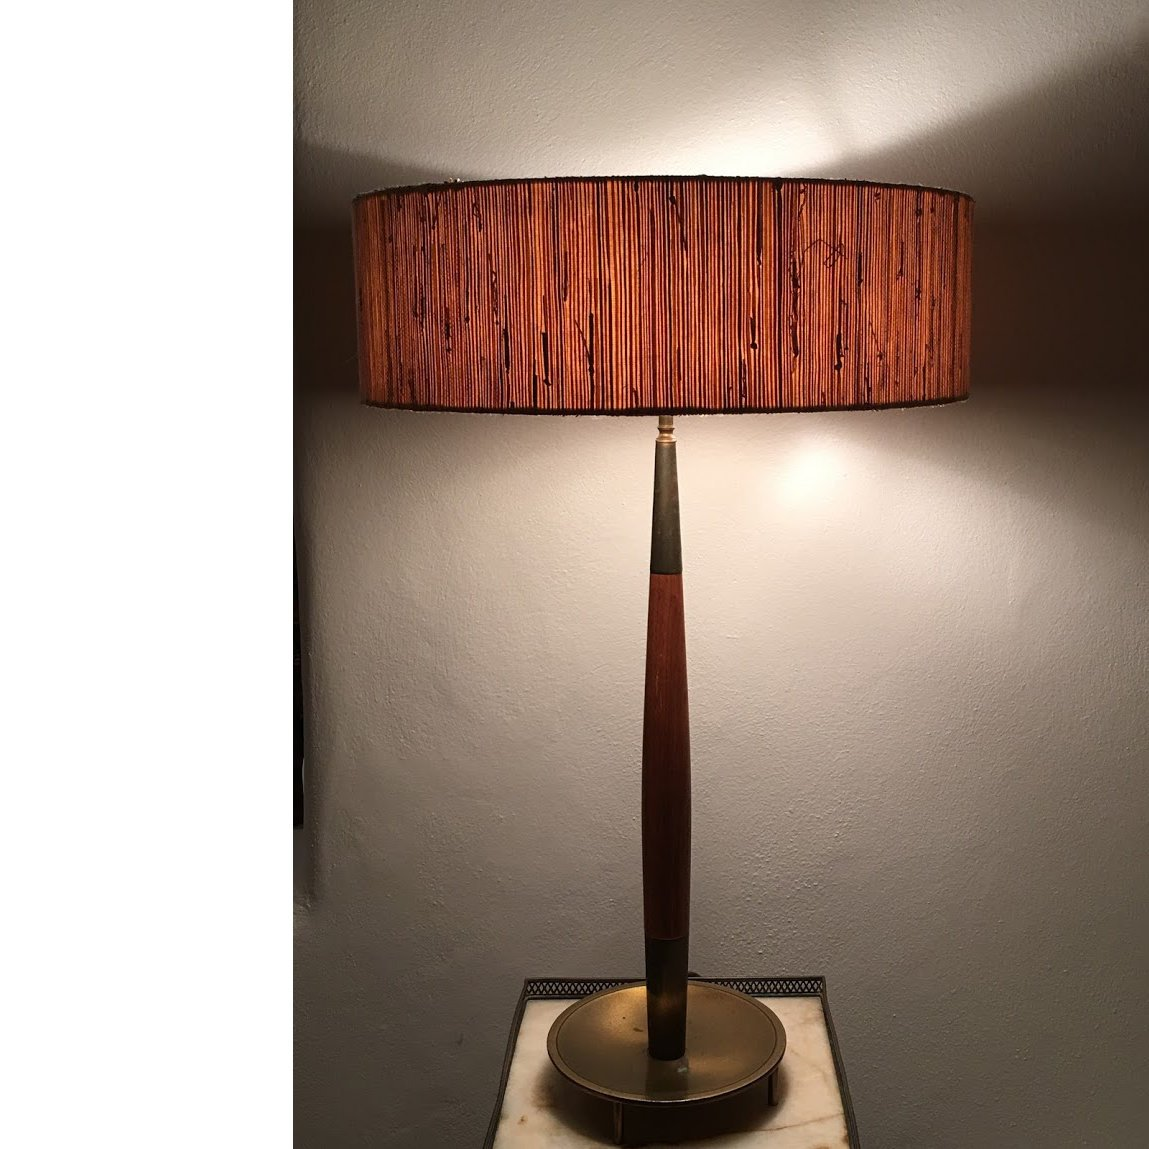 Pair of 1960 39 s table lamps by stiffel iconic nz design for Iconic design lamps